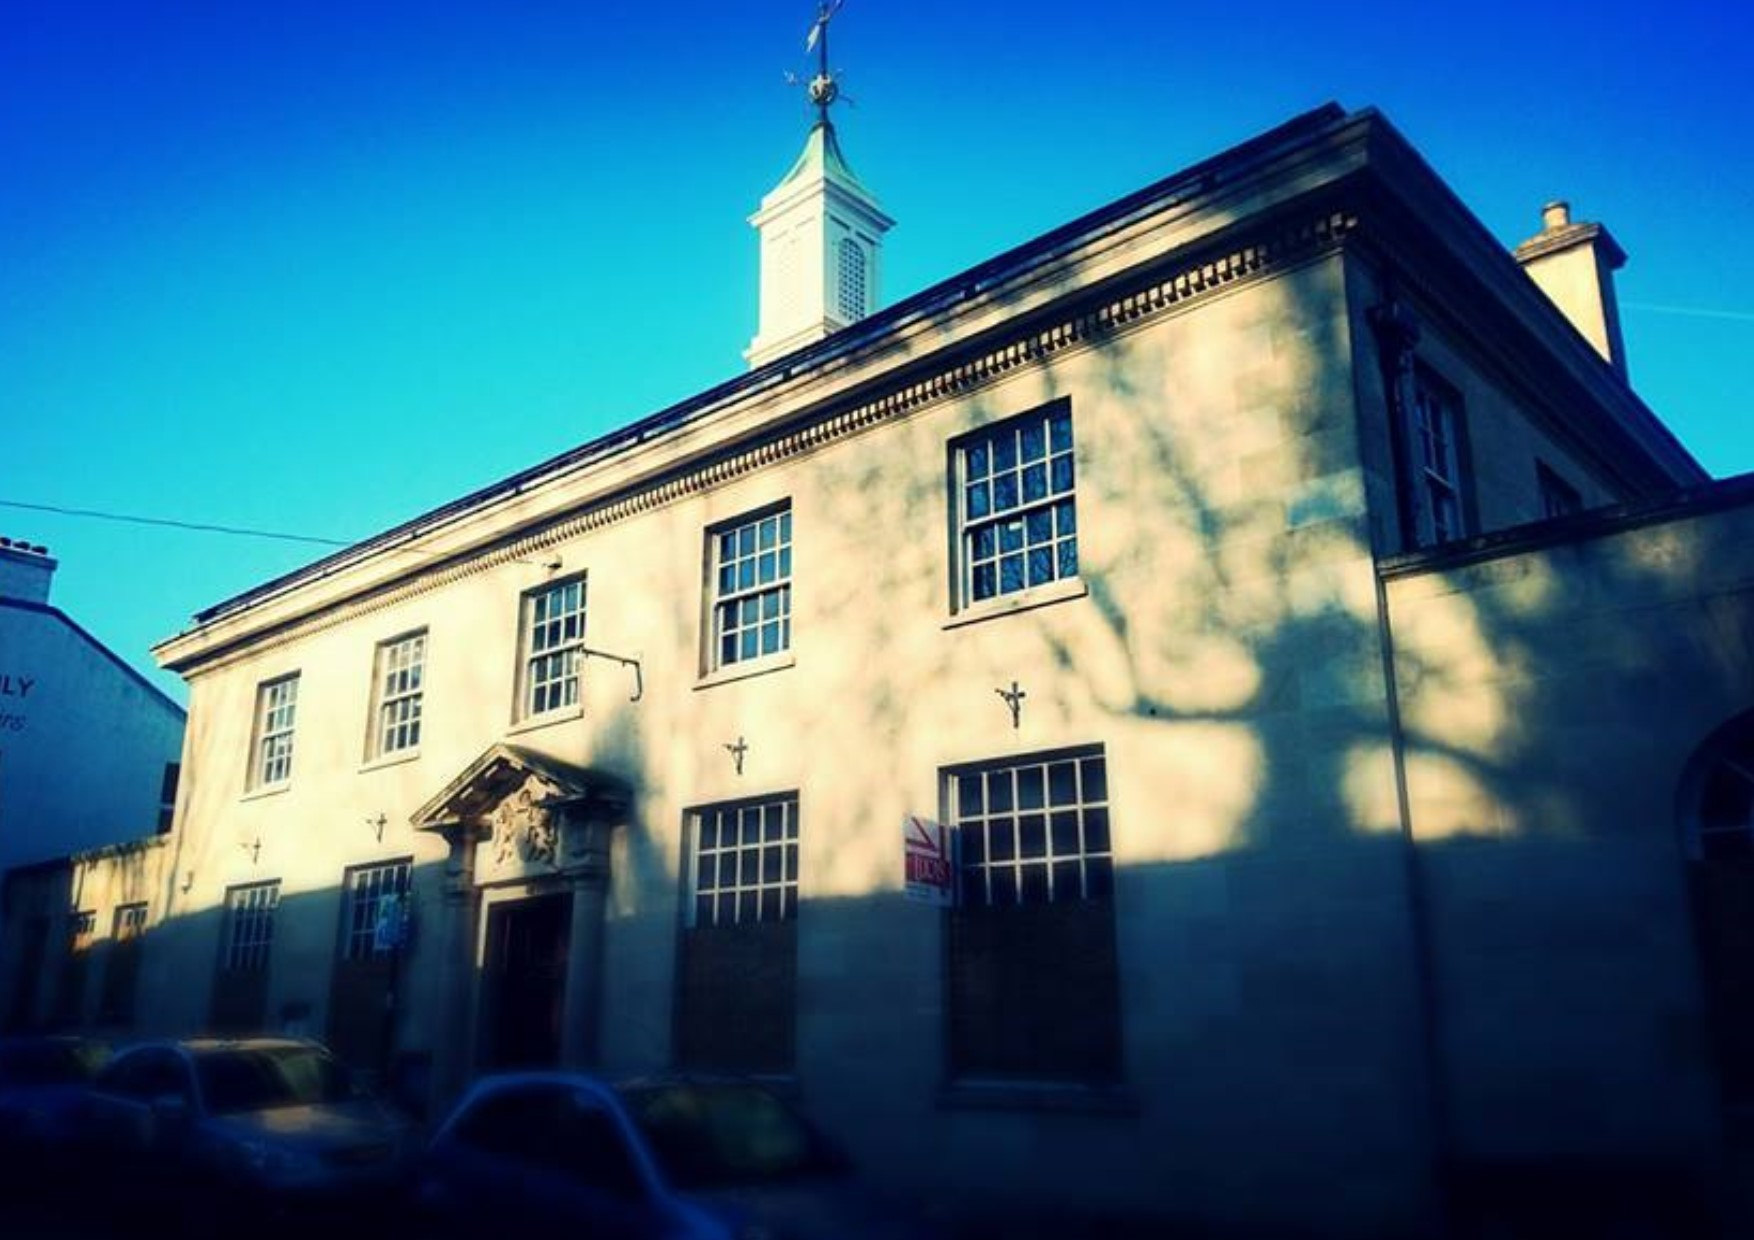 The Old Post Office, Haverfordwest, where Haverhub will host their next volunteer meet up on October 25.